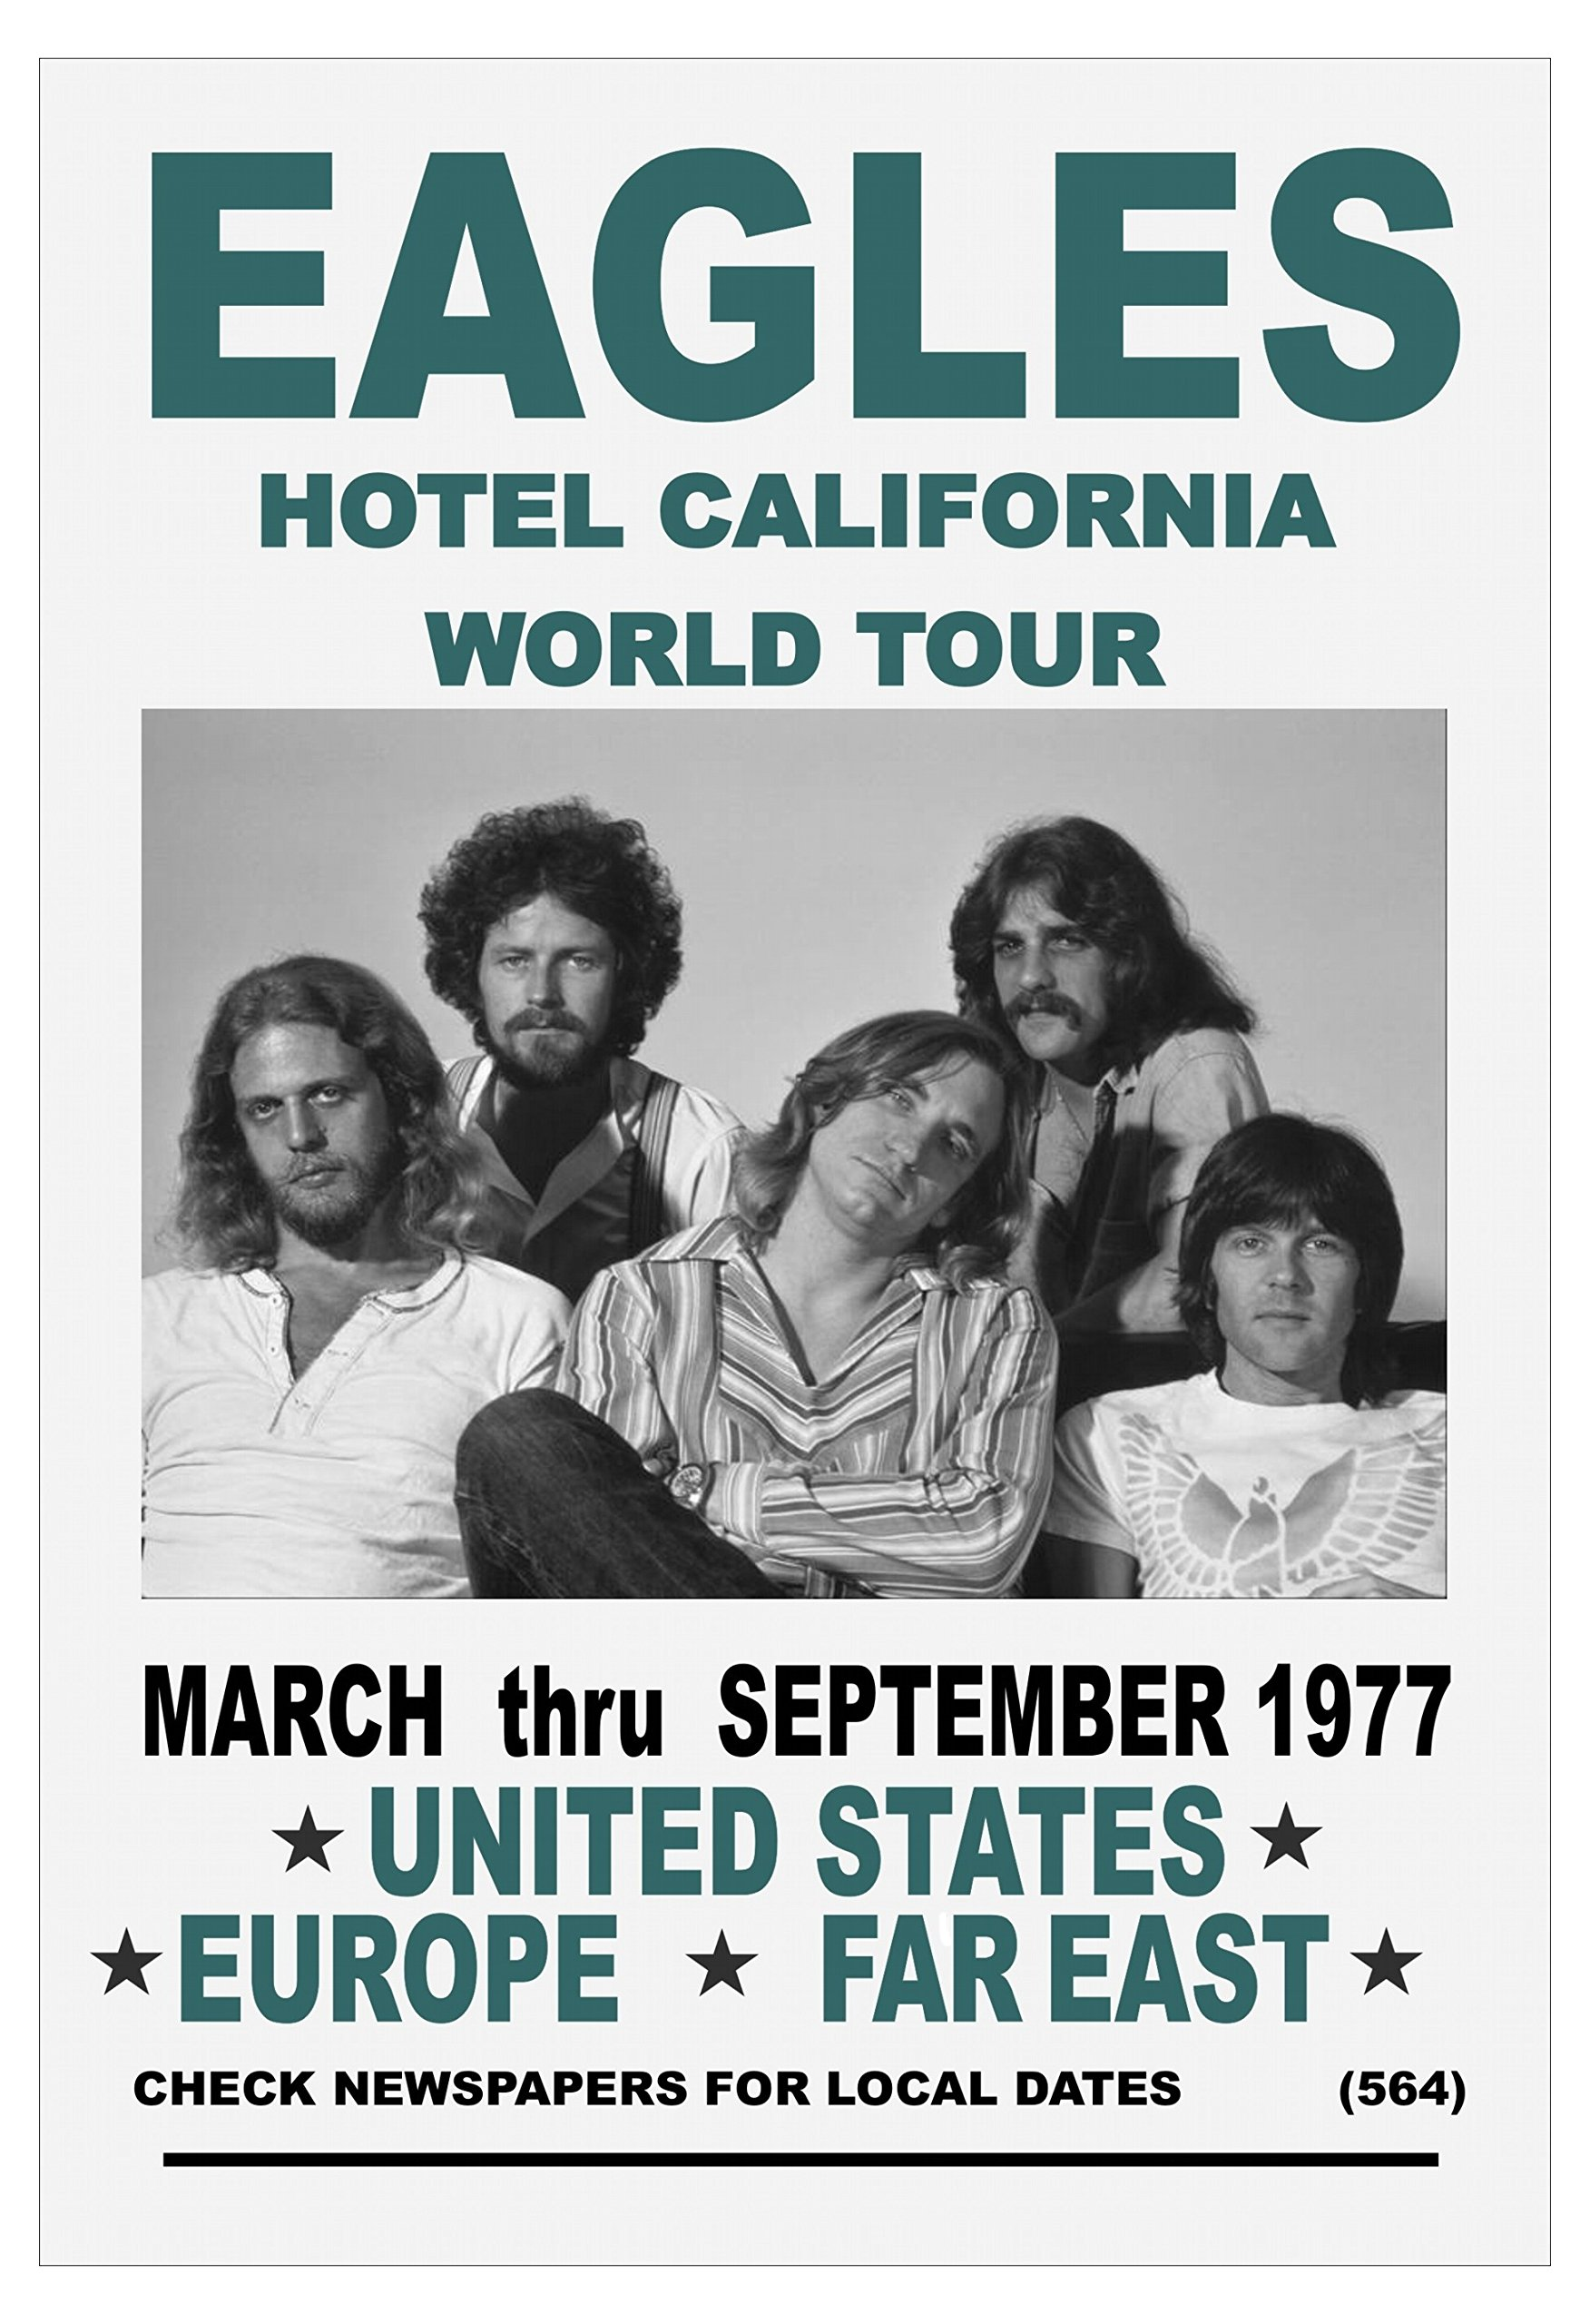 Eagles World Tour 1977 USA far East and Europe Hotel California Tour Concert Poster